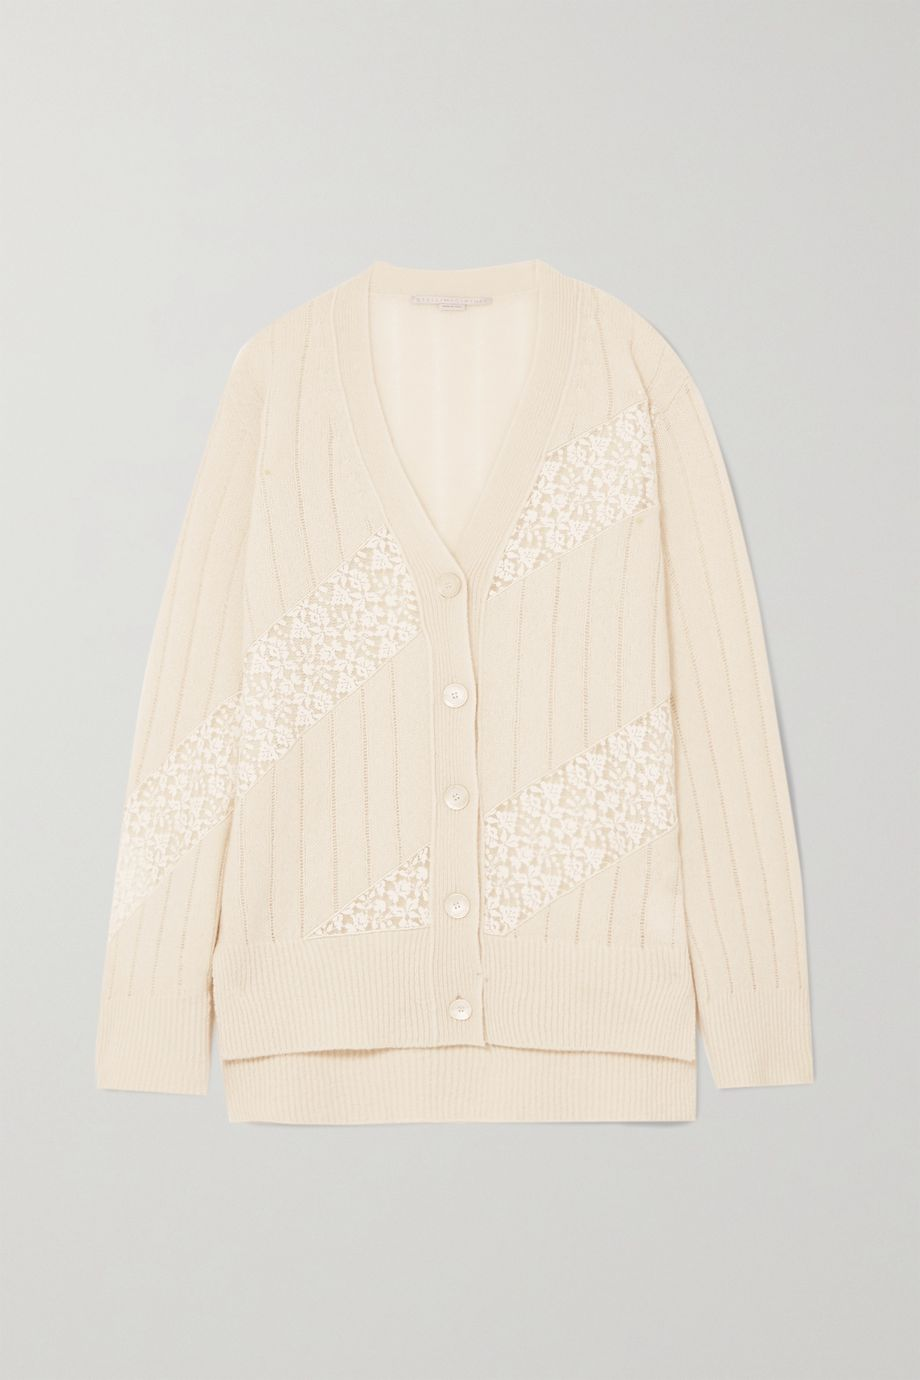 Stella McCartney + NET SUSTAIN lace-paneled cashmere and wool-blend cardigan